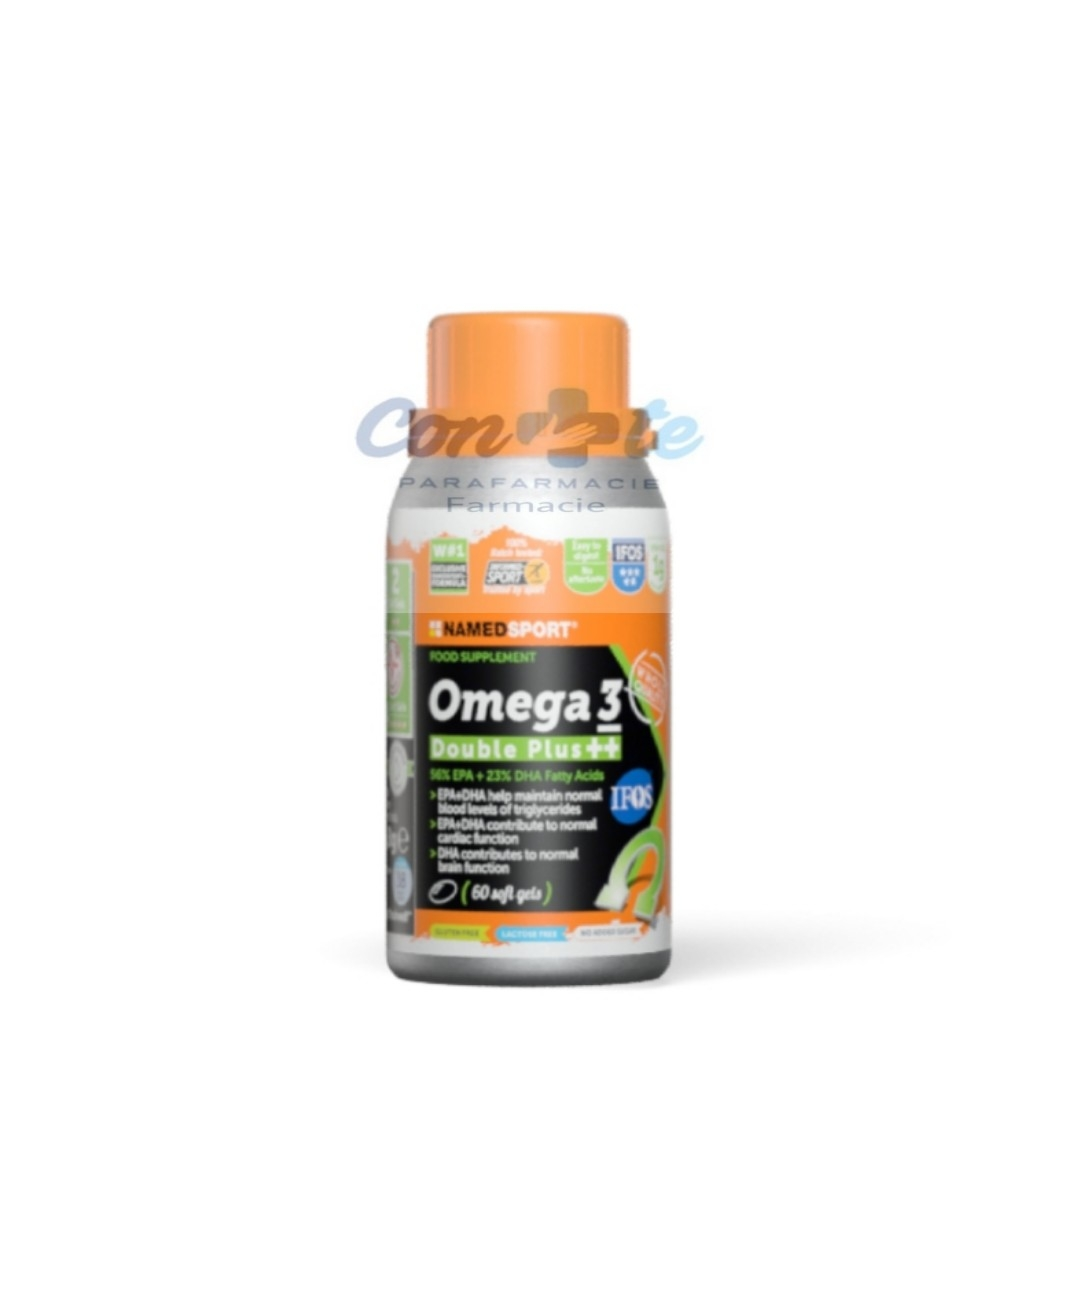 Named Omega 3 double plus ++60 soft gel